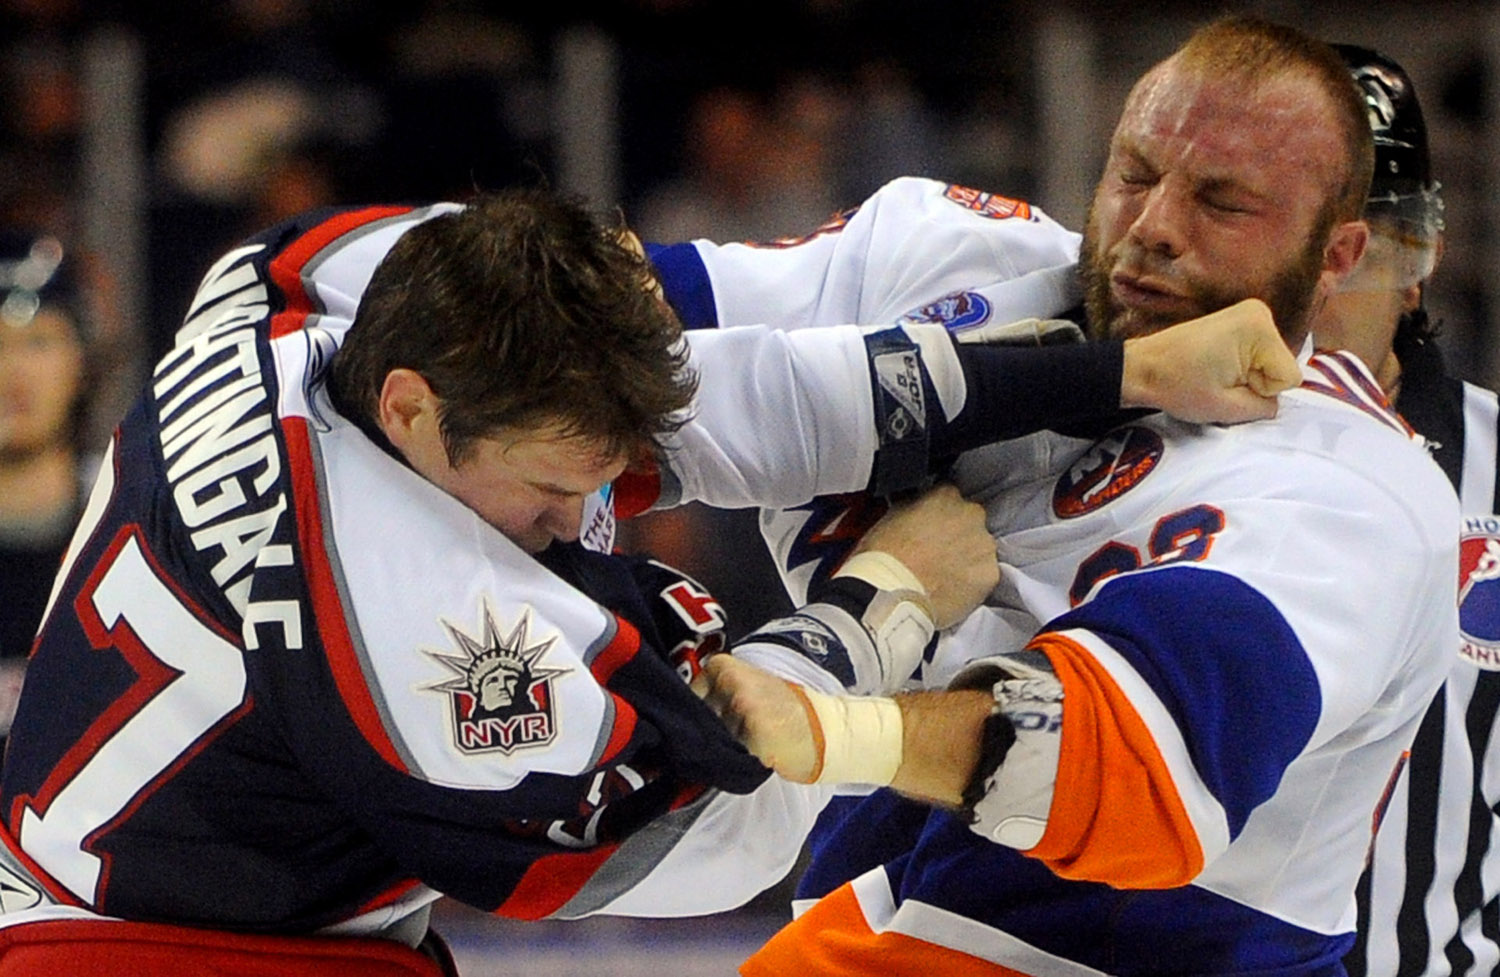 Soundtiger Jeremy Yablonski fights with Jared Nightingale during Saturday's game against the Hartford Wolf Pack at the Arena at Harbor Yard on November 6, 2010.